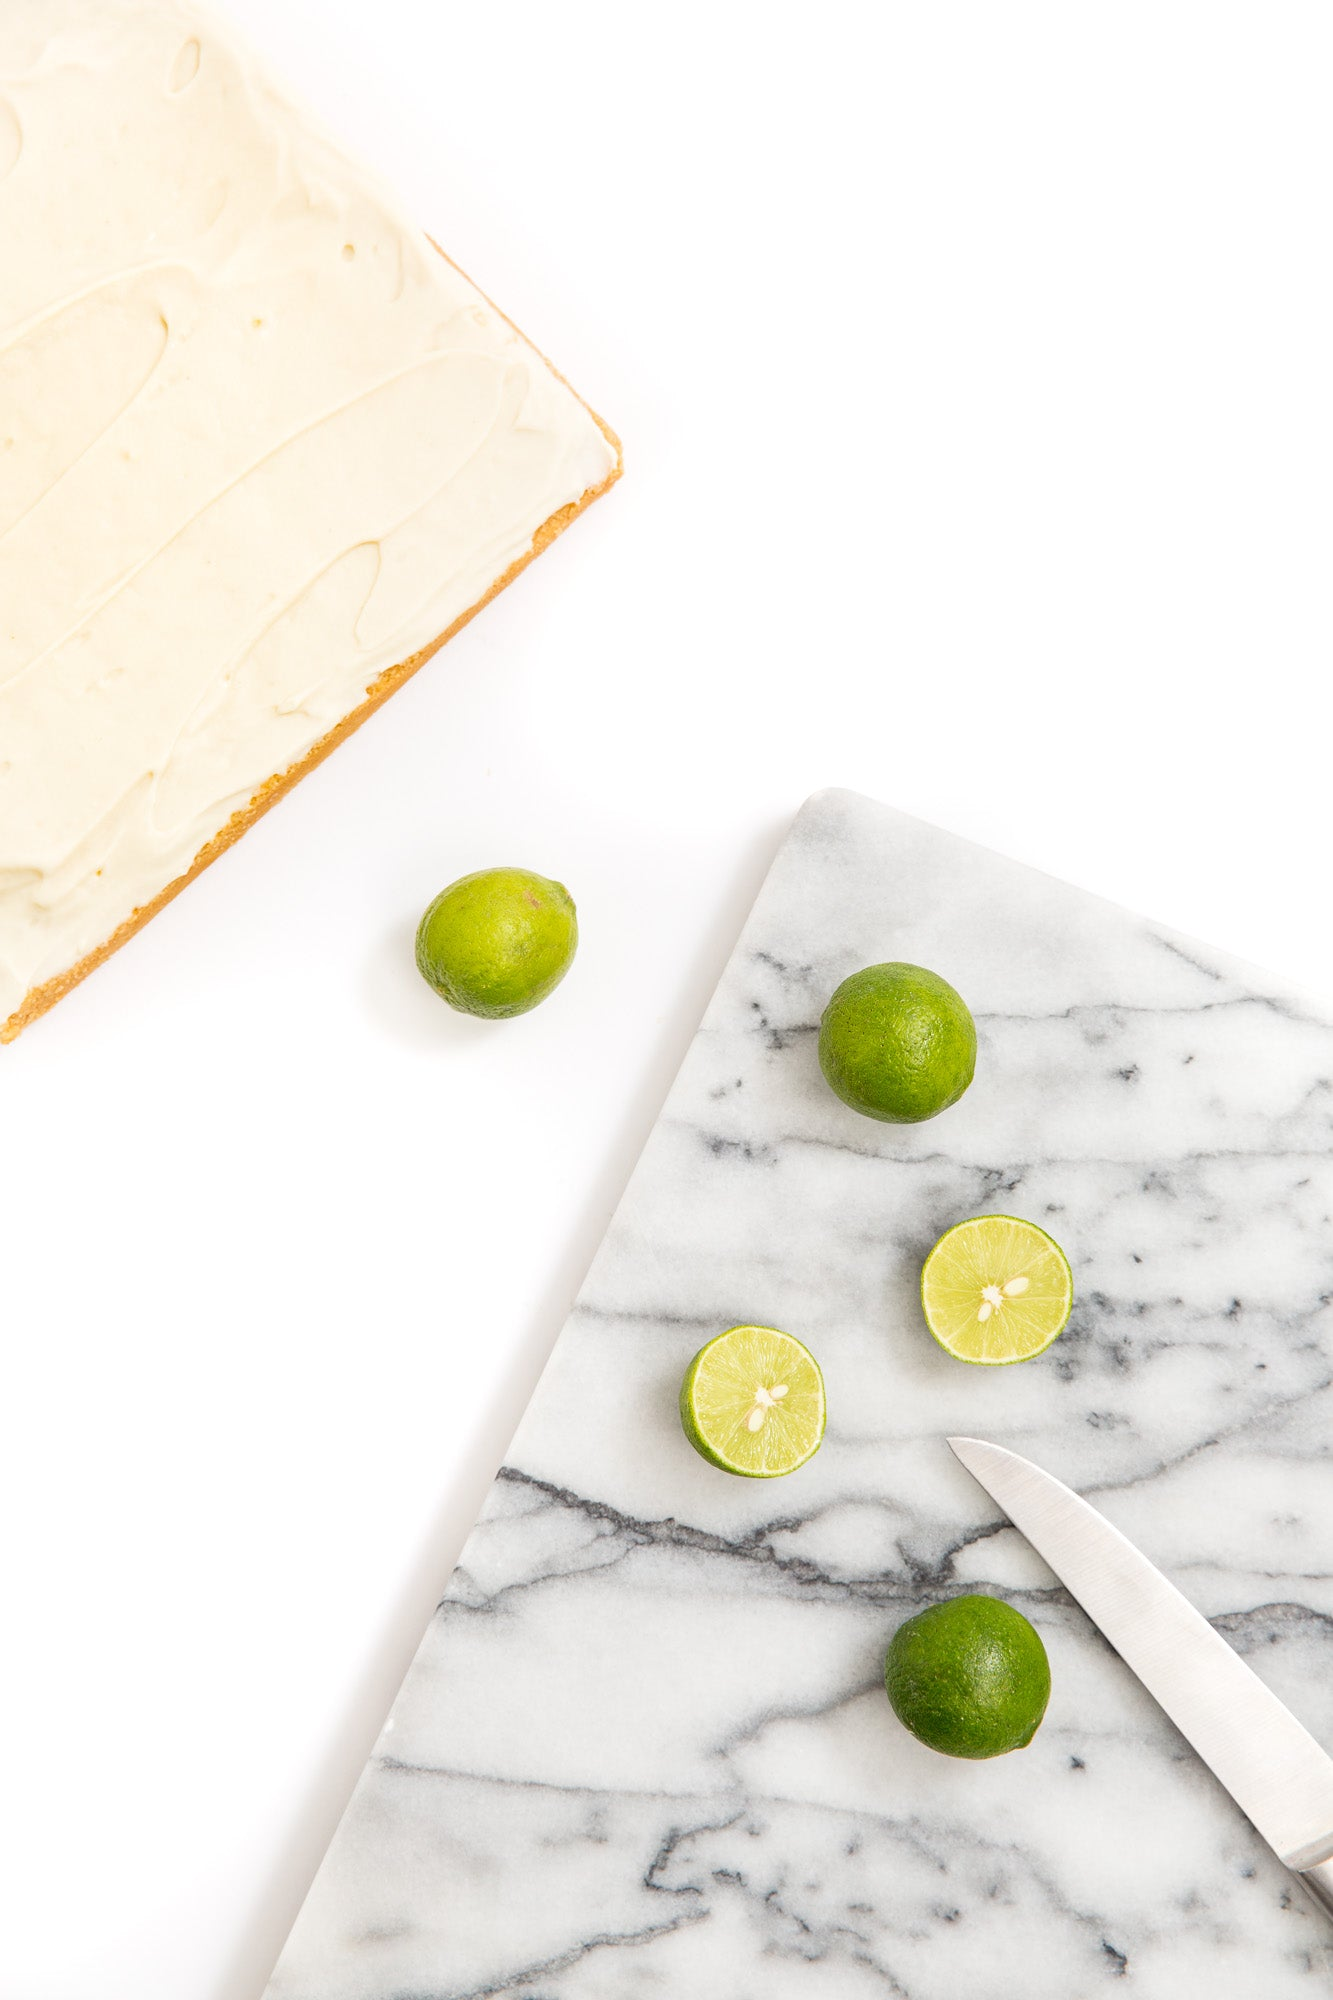 Image of part of Miss Jones Baking Co Key Lime Margarita Bars next to a marble cutting board with limes and a knife